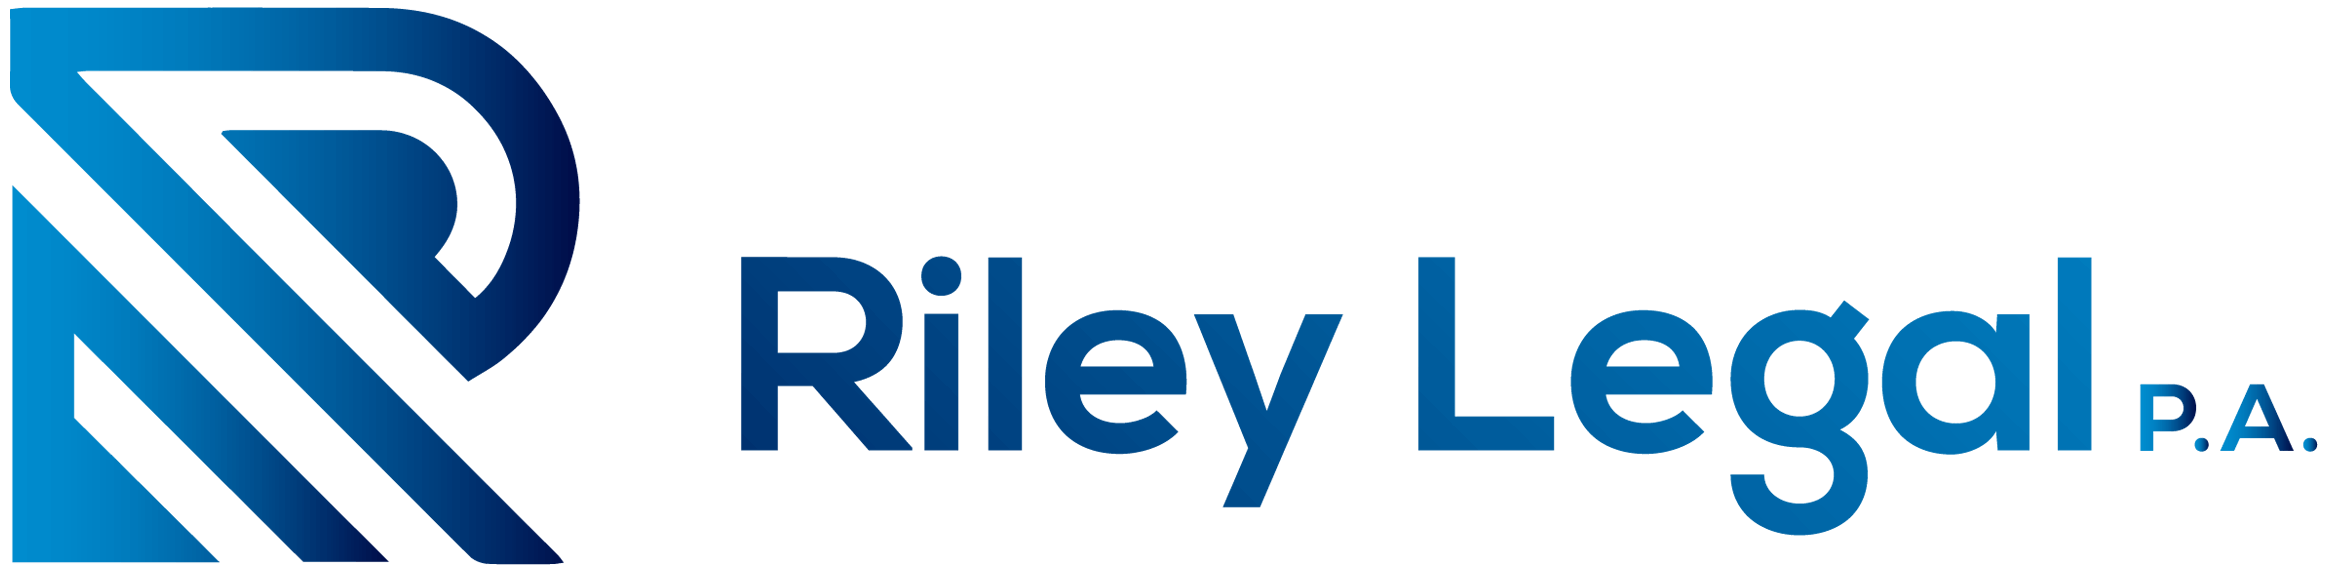 Riley Legal, P.A.